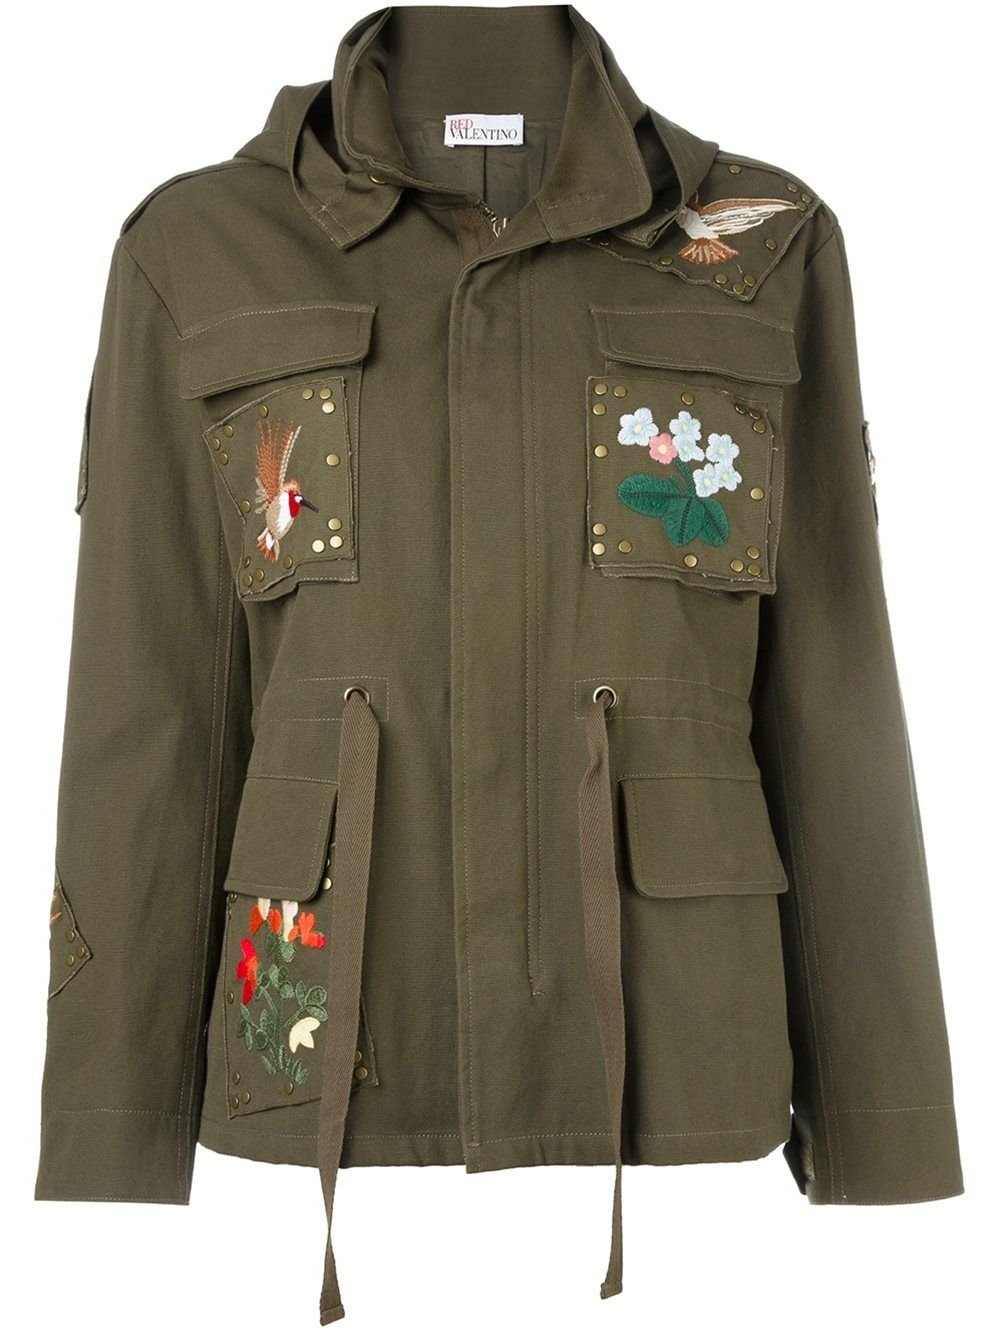 Military Jackets For Women Military Jacket Diy Jacket Military Jacket Green